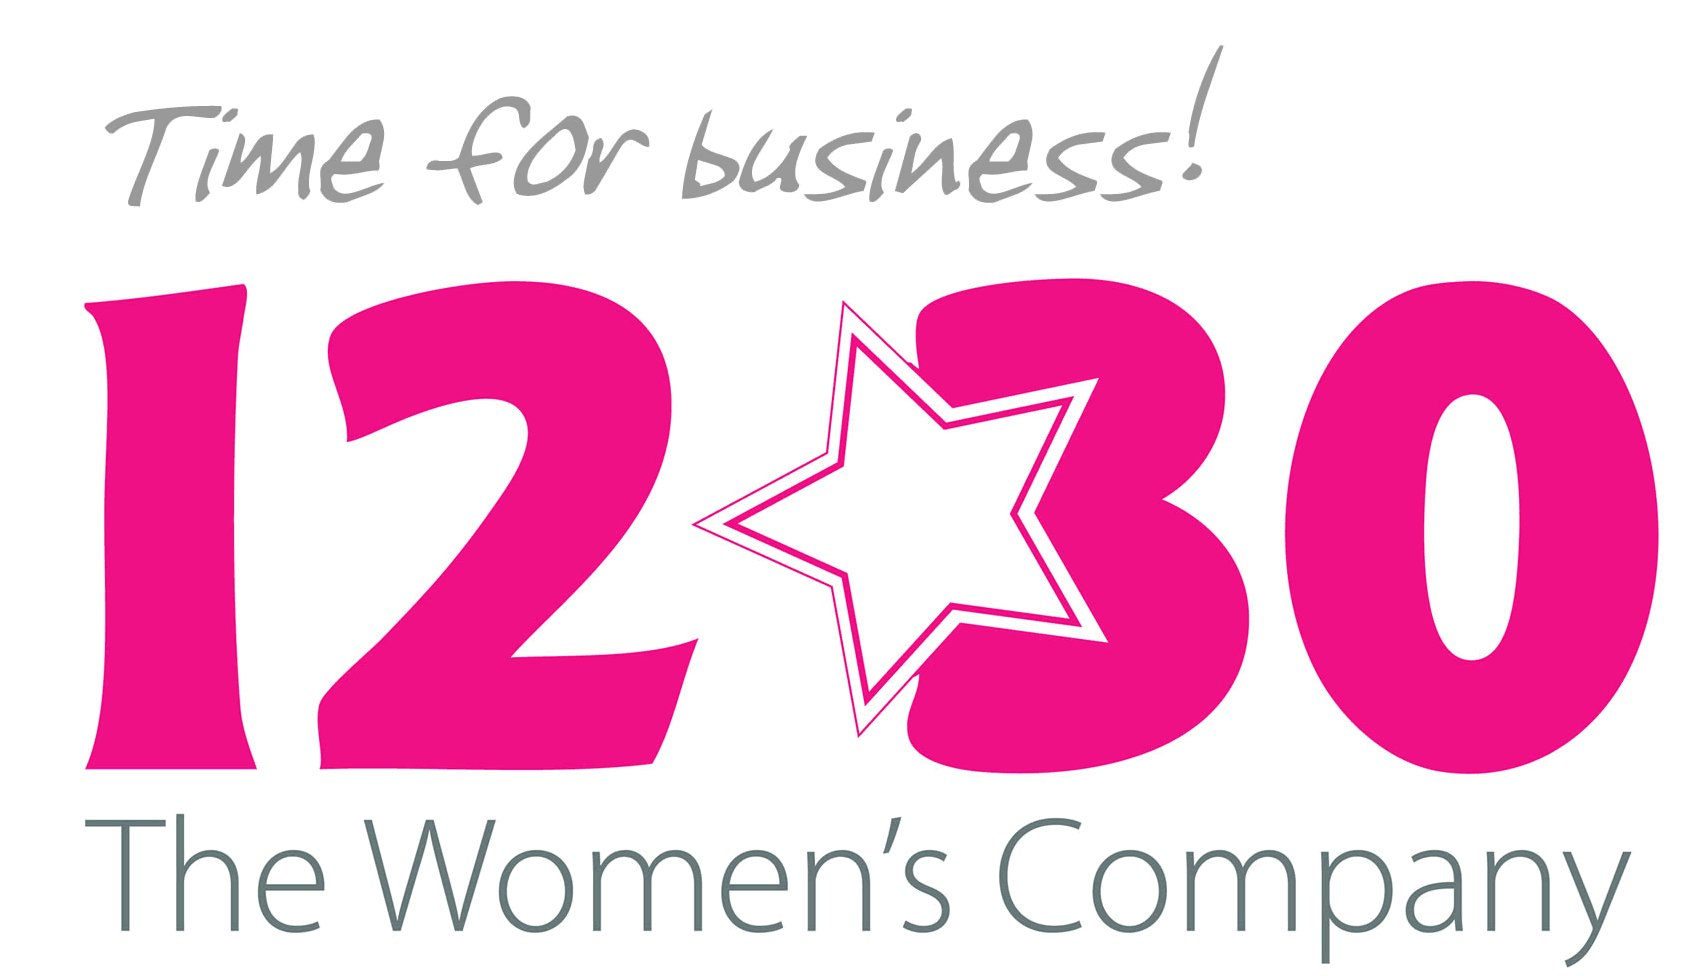 1230 TWC - networking for businesswomen